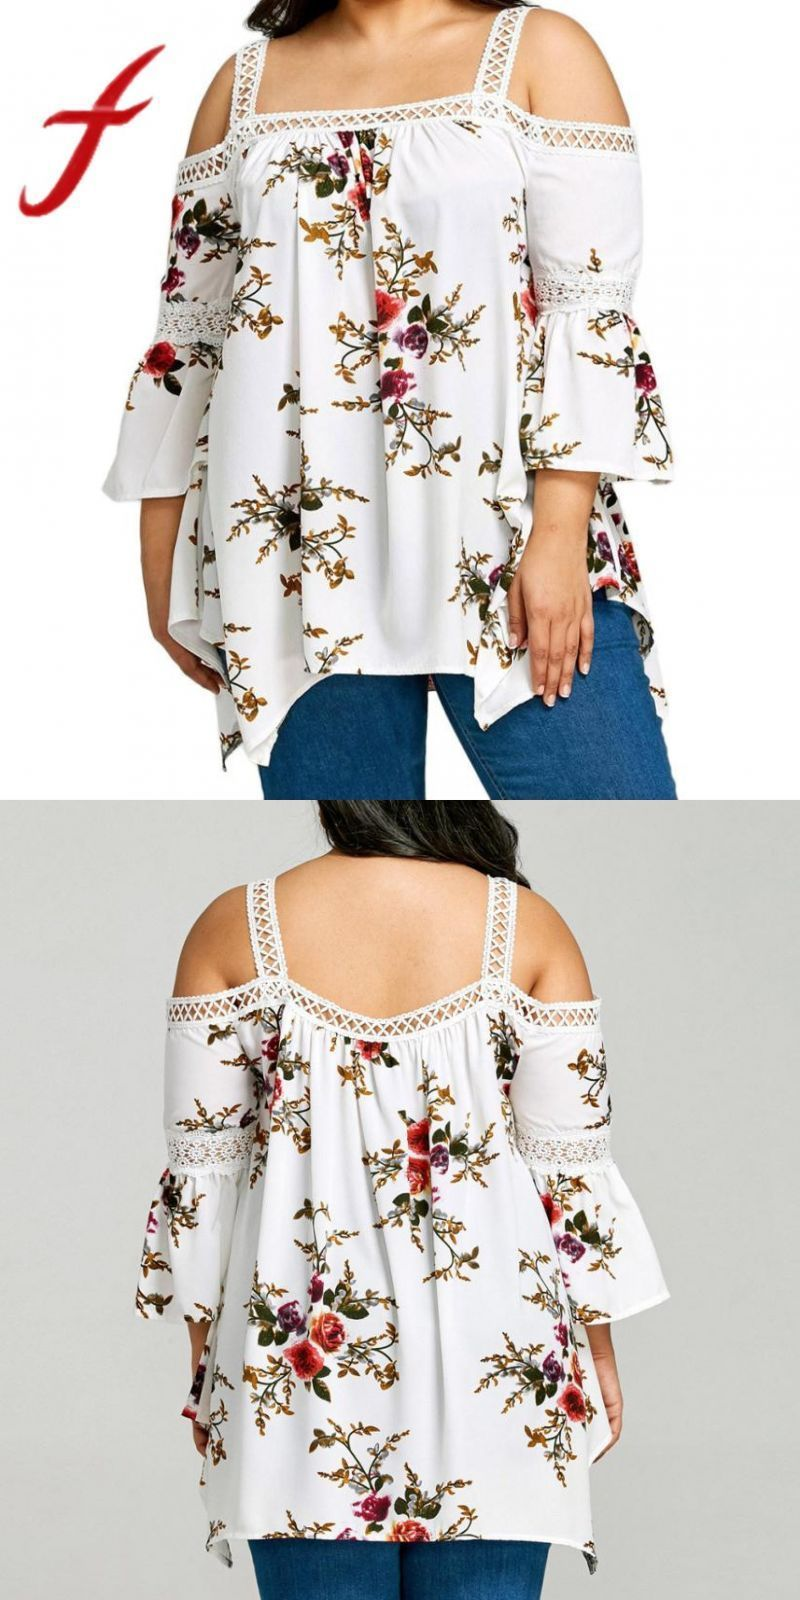 Women Chiffon Blouses Sexy Cold Shoulder Lace Floral Printing Shirt